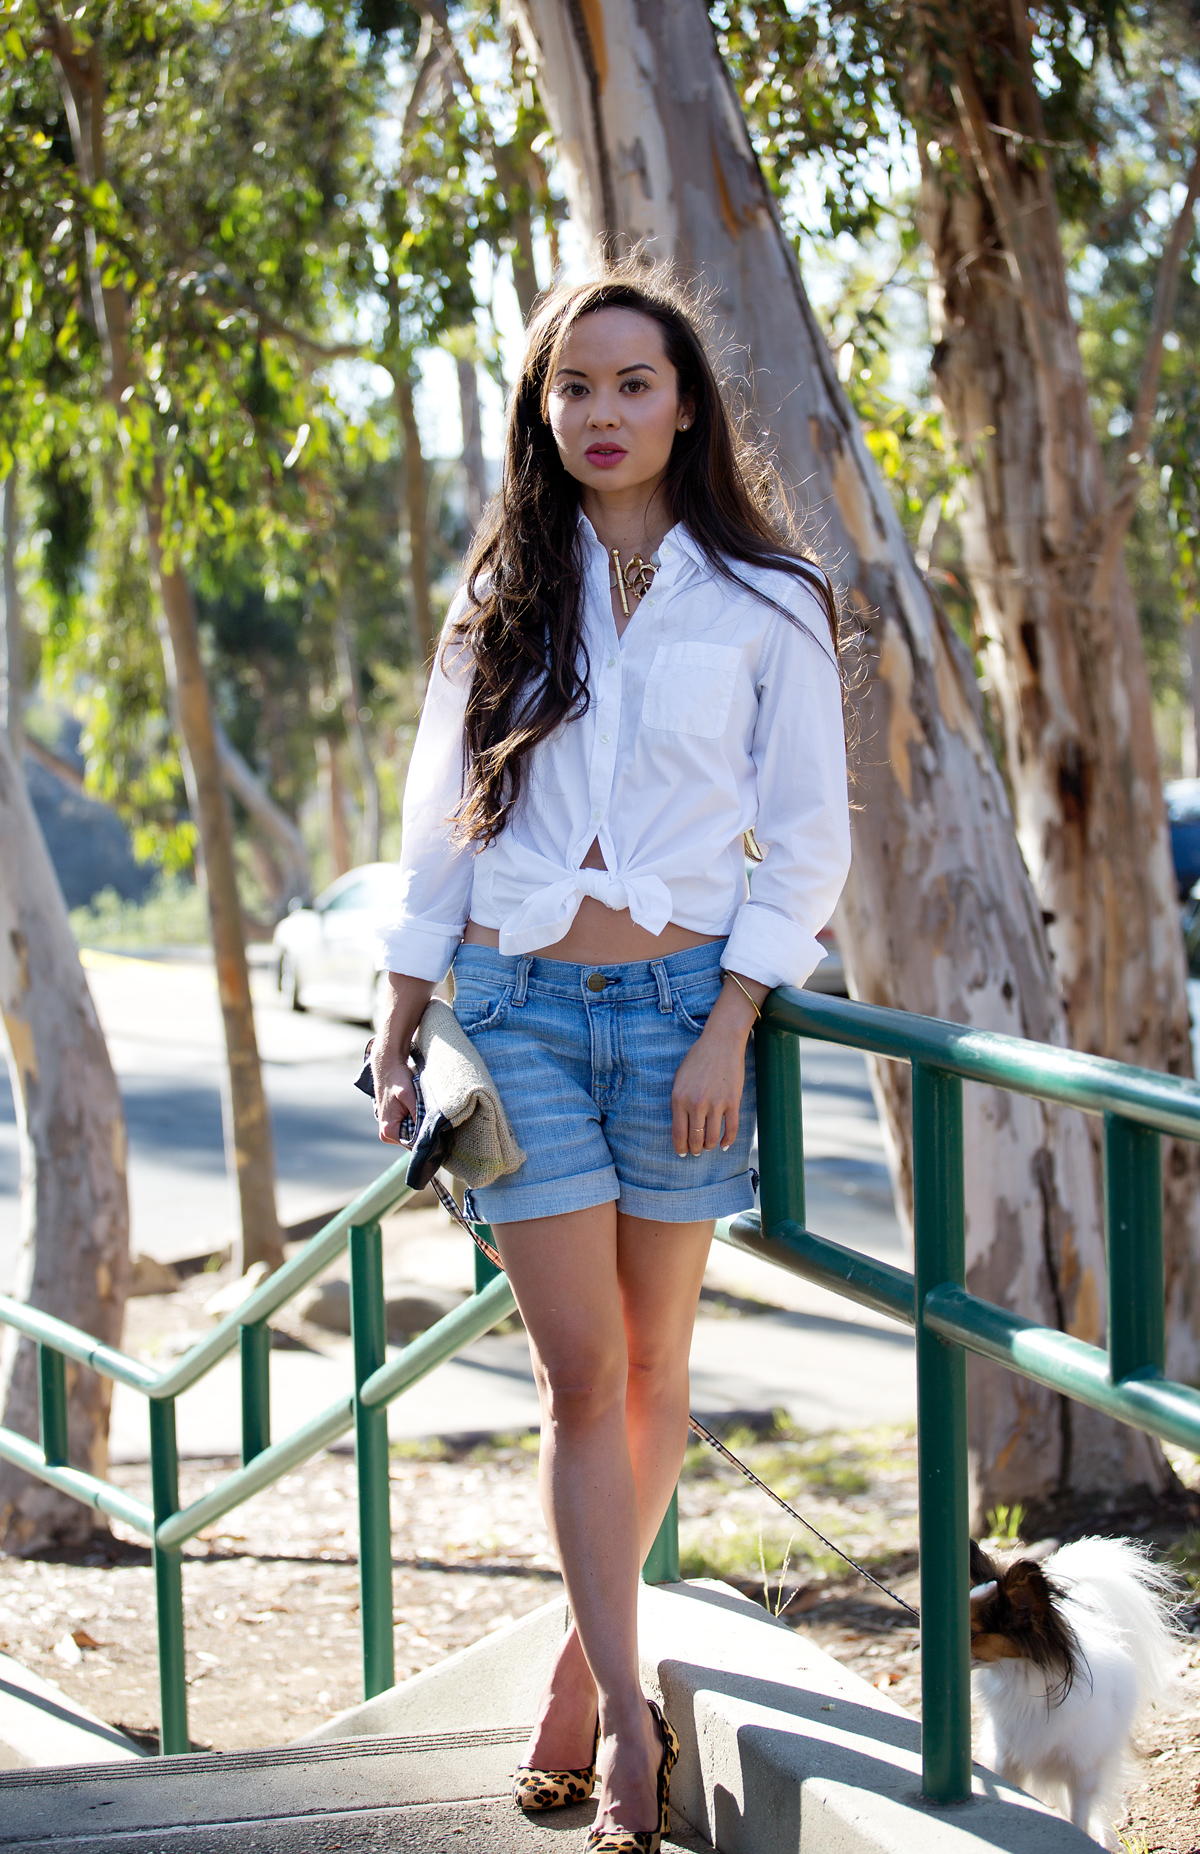 sincerely jules, song of style, fashion blog, la style, la fashion, la model, style blog, uniqlo shirt, white button down, current elliott shorts, burlap clutch, kelly wearstler jewelry, papillon, zara heels, leopard heels, camille newbern, the la survival guide, la survival guide